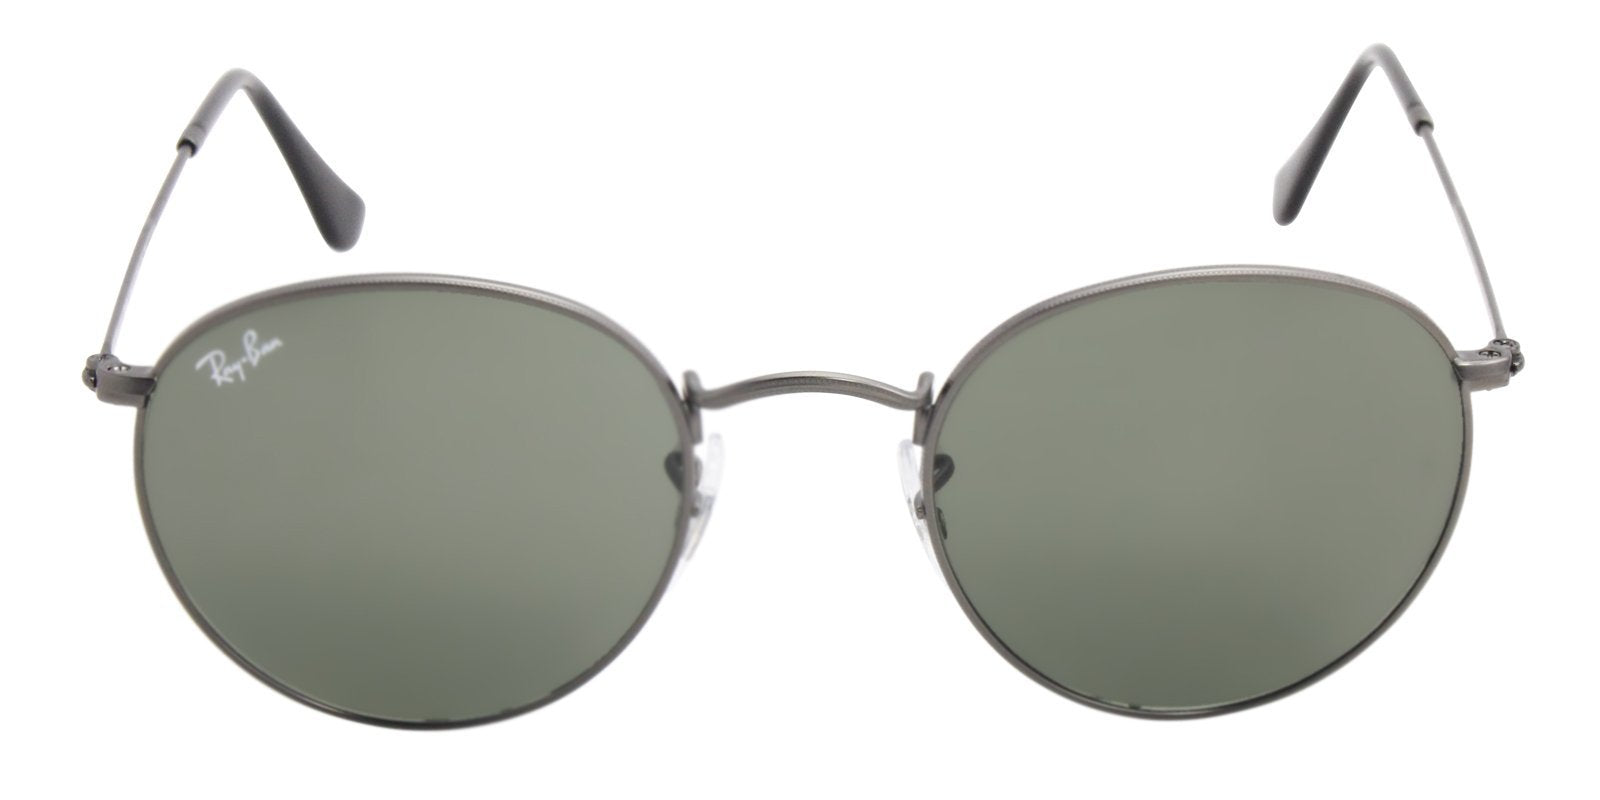 Ray Ban - Round Metal Gray Oval Unisex Sunglasses - 50mm-Sunglasses-Designer Eyes